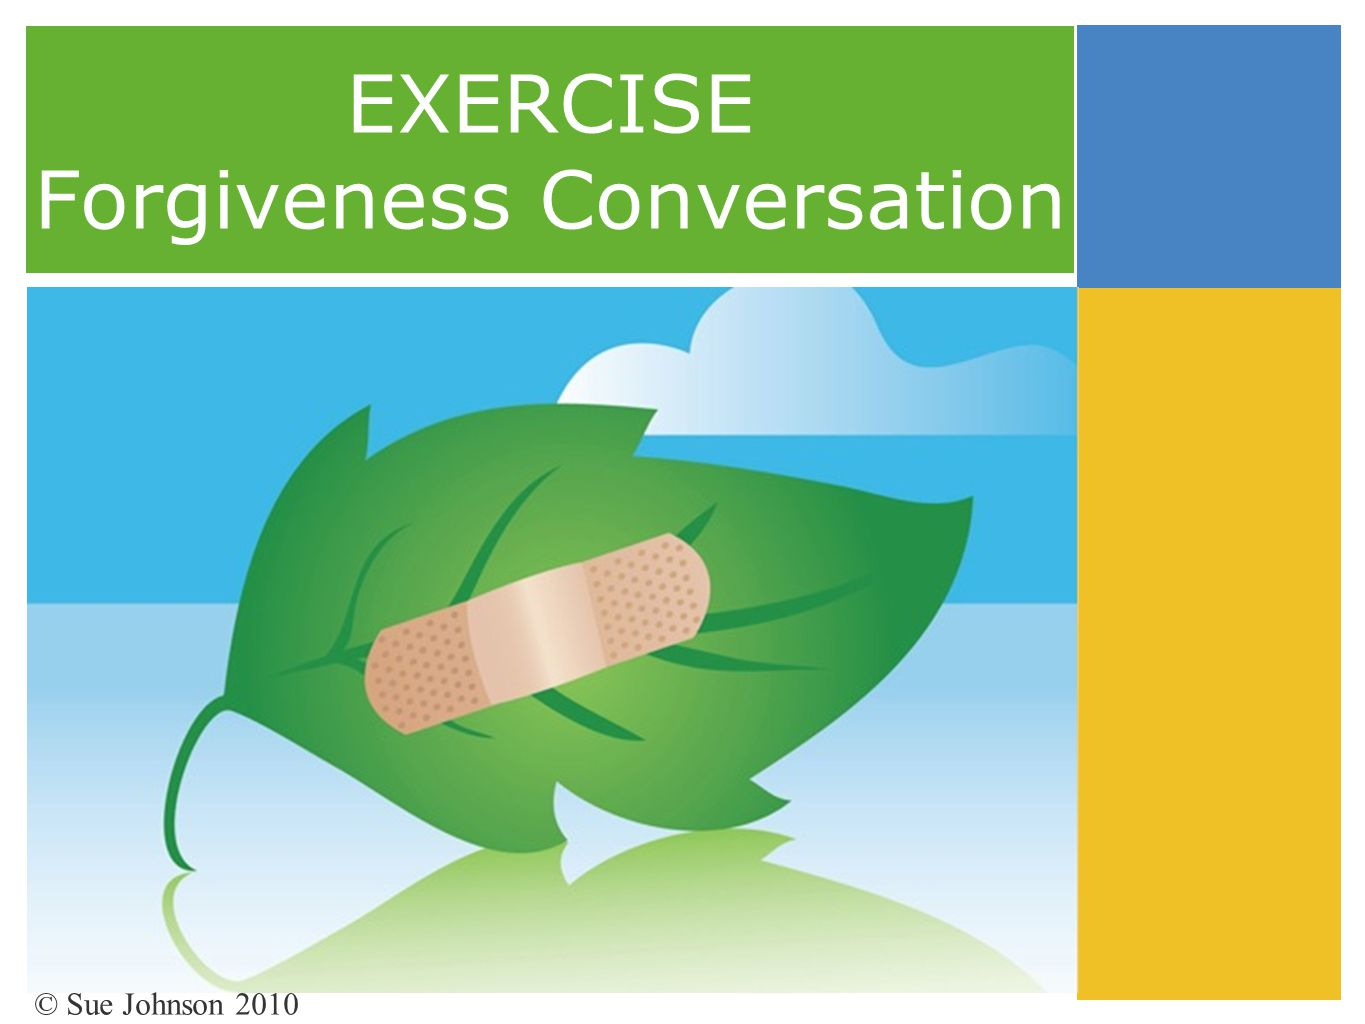 EXERCISE Forgiveness Conversation